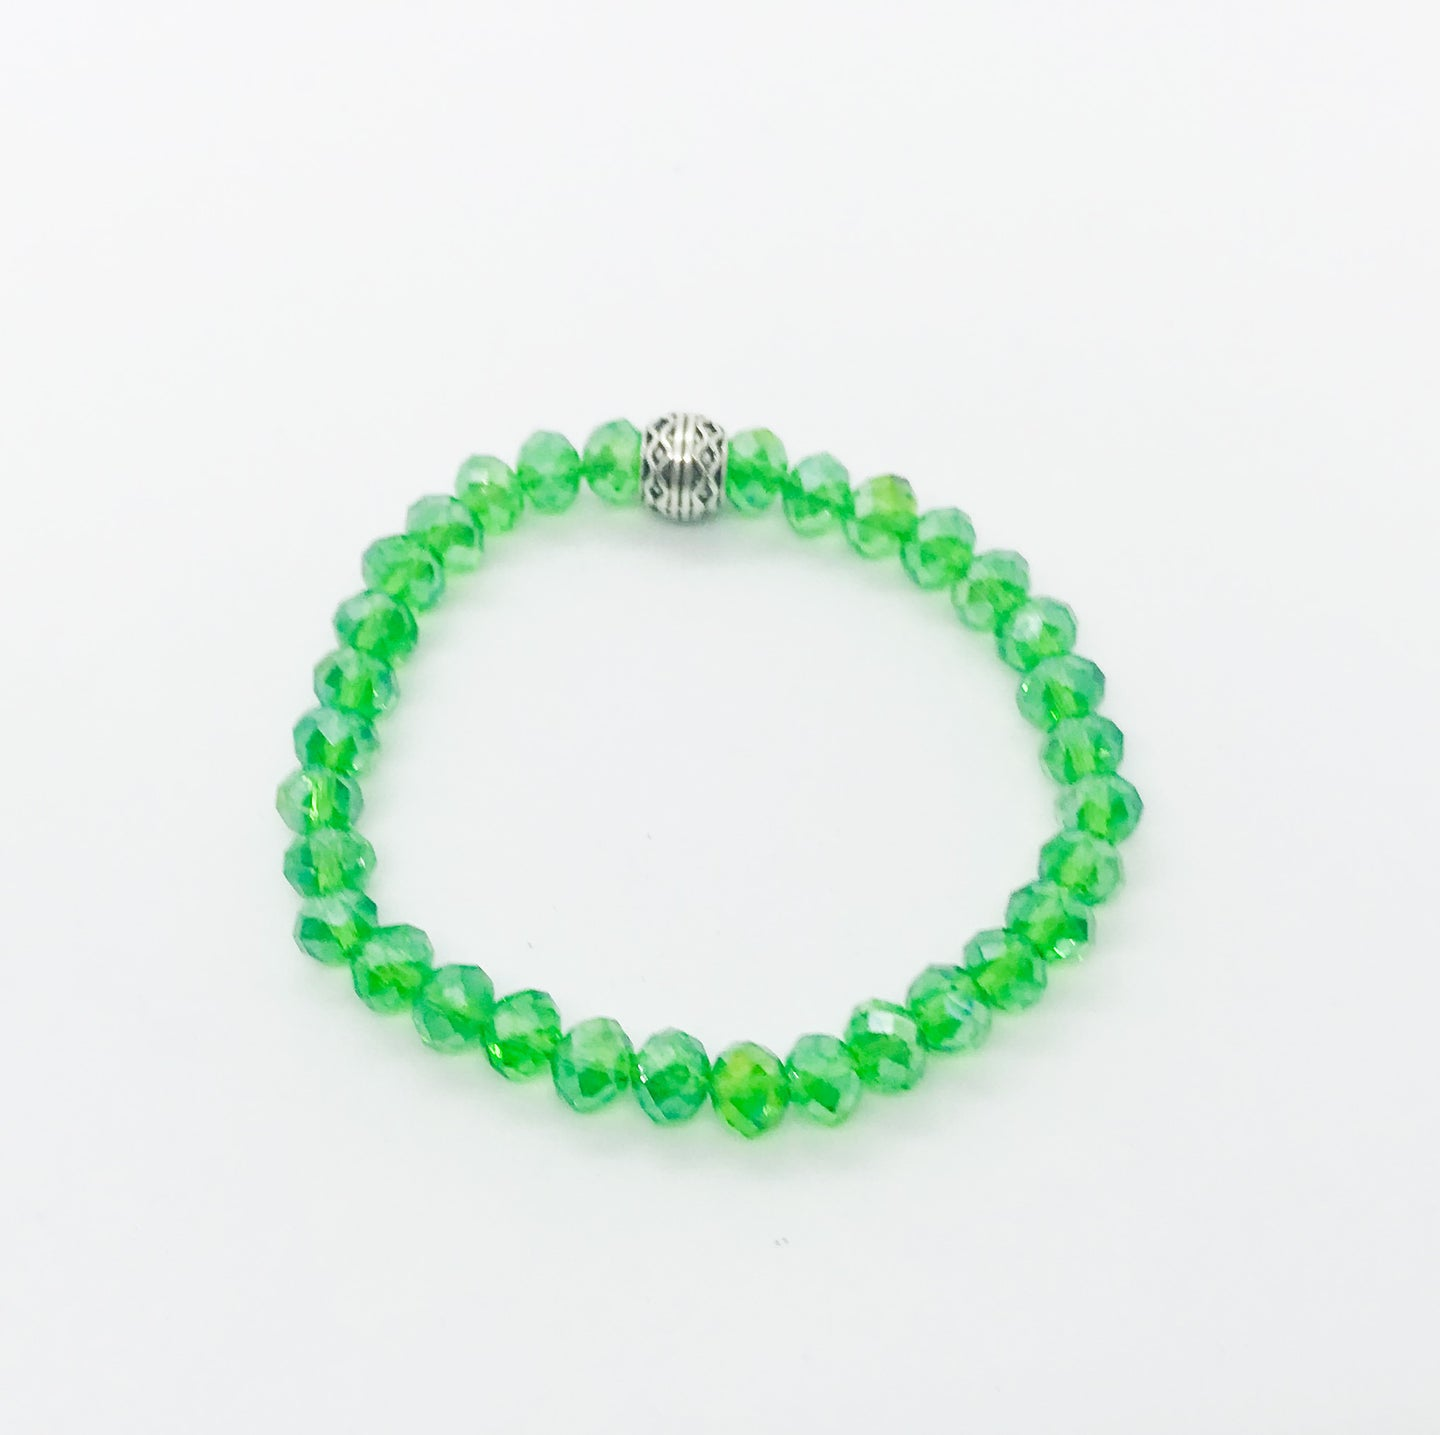 Glass Bead Stretchy Bracelet - B708